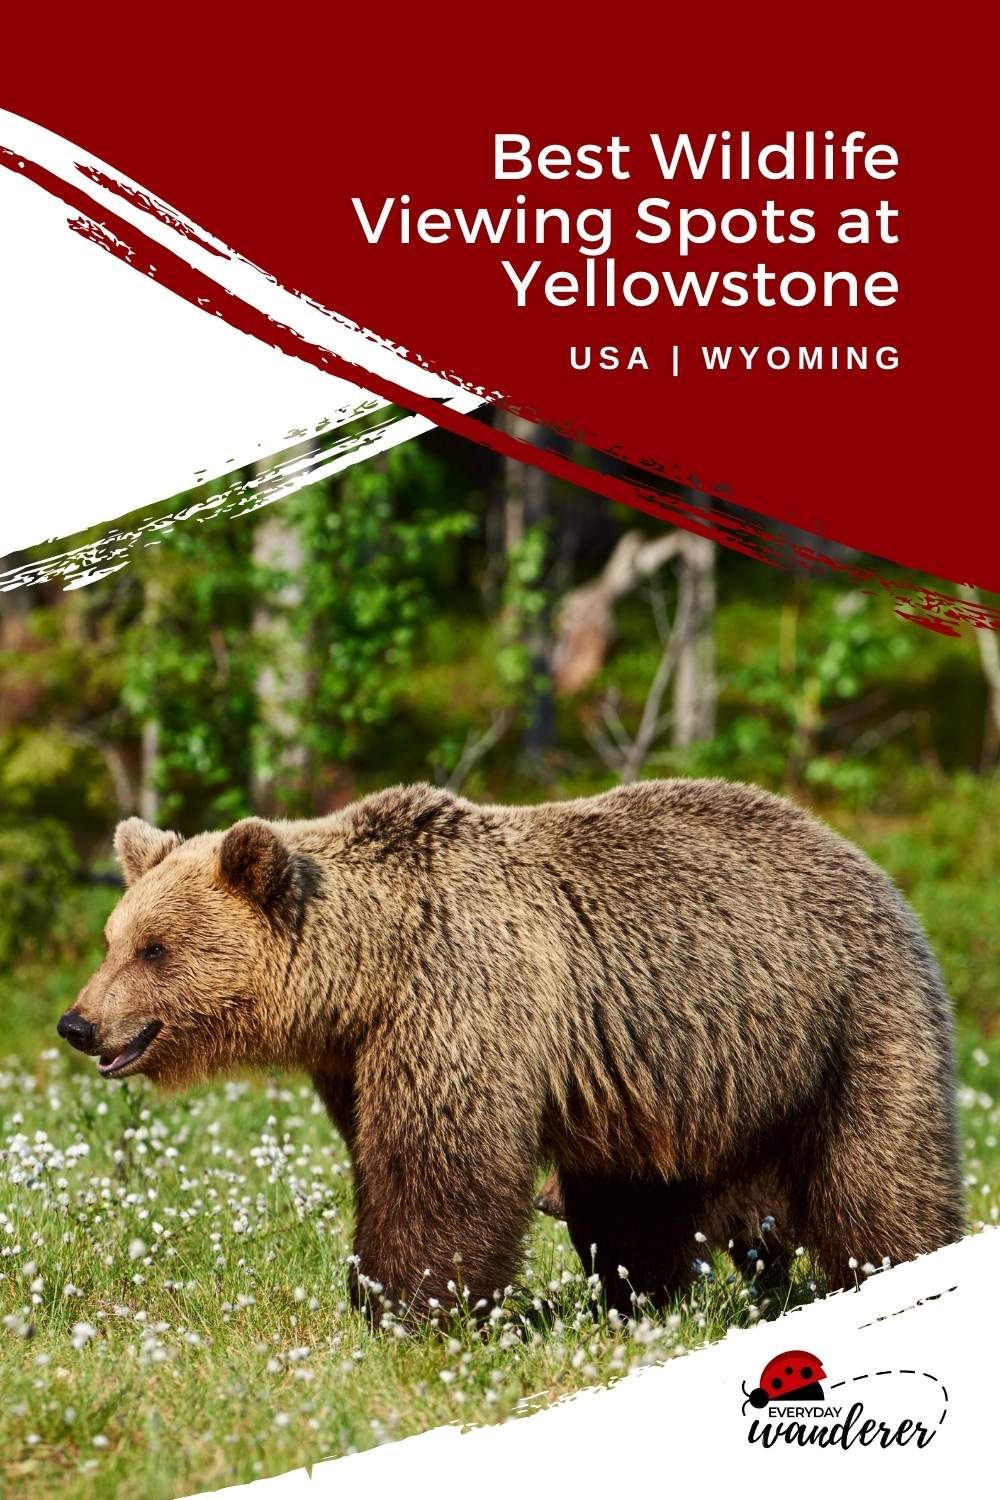 Animals at Yellowstone - Pin 1 - JPG